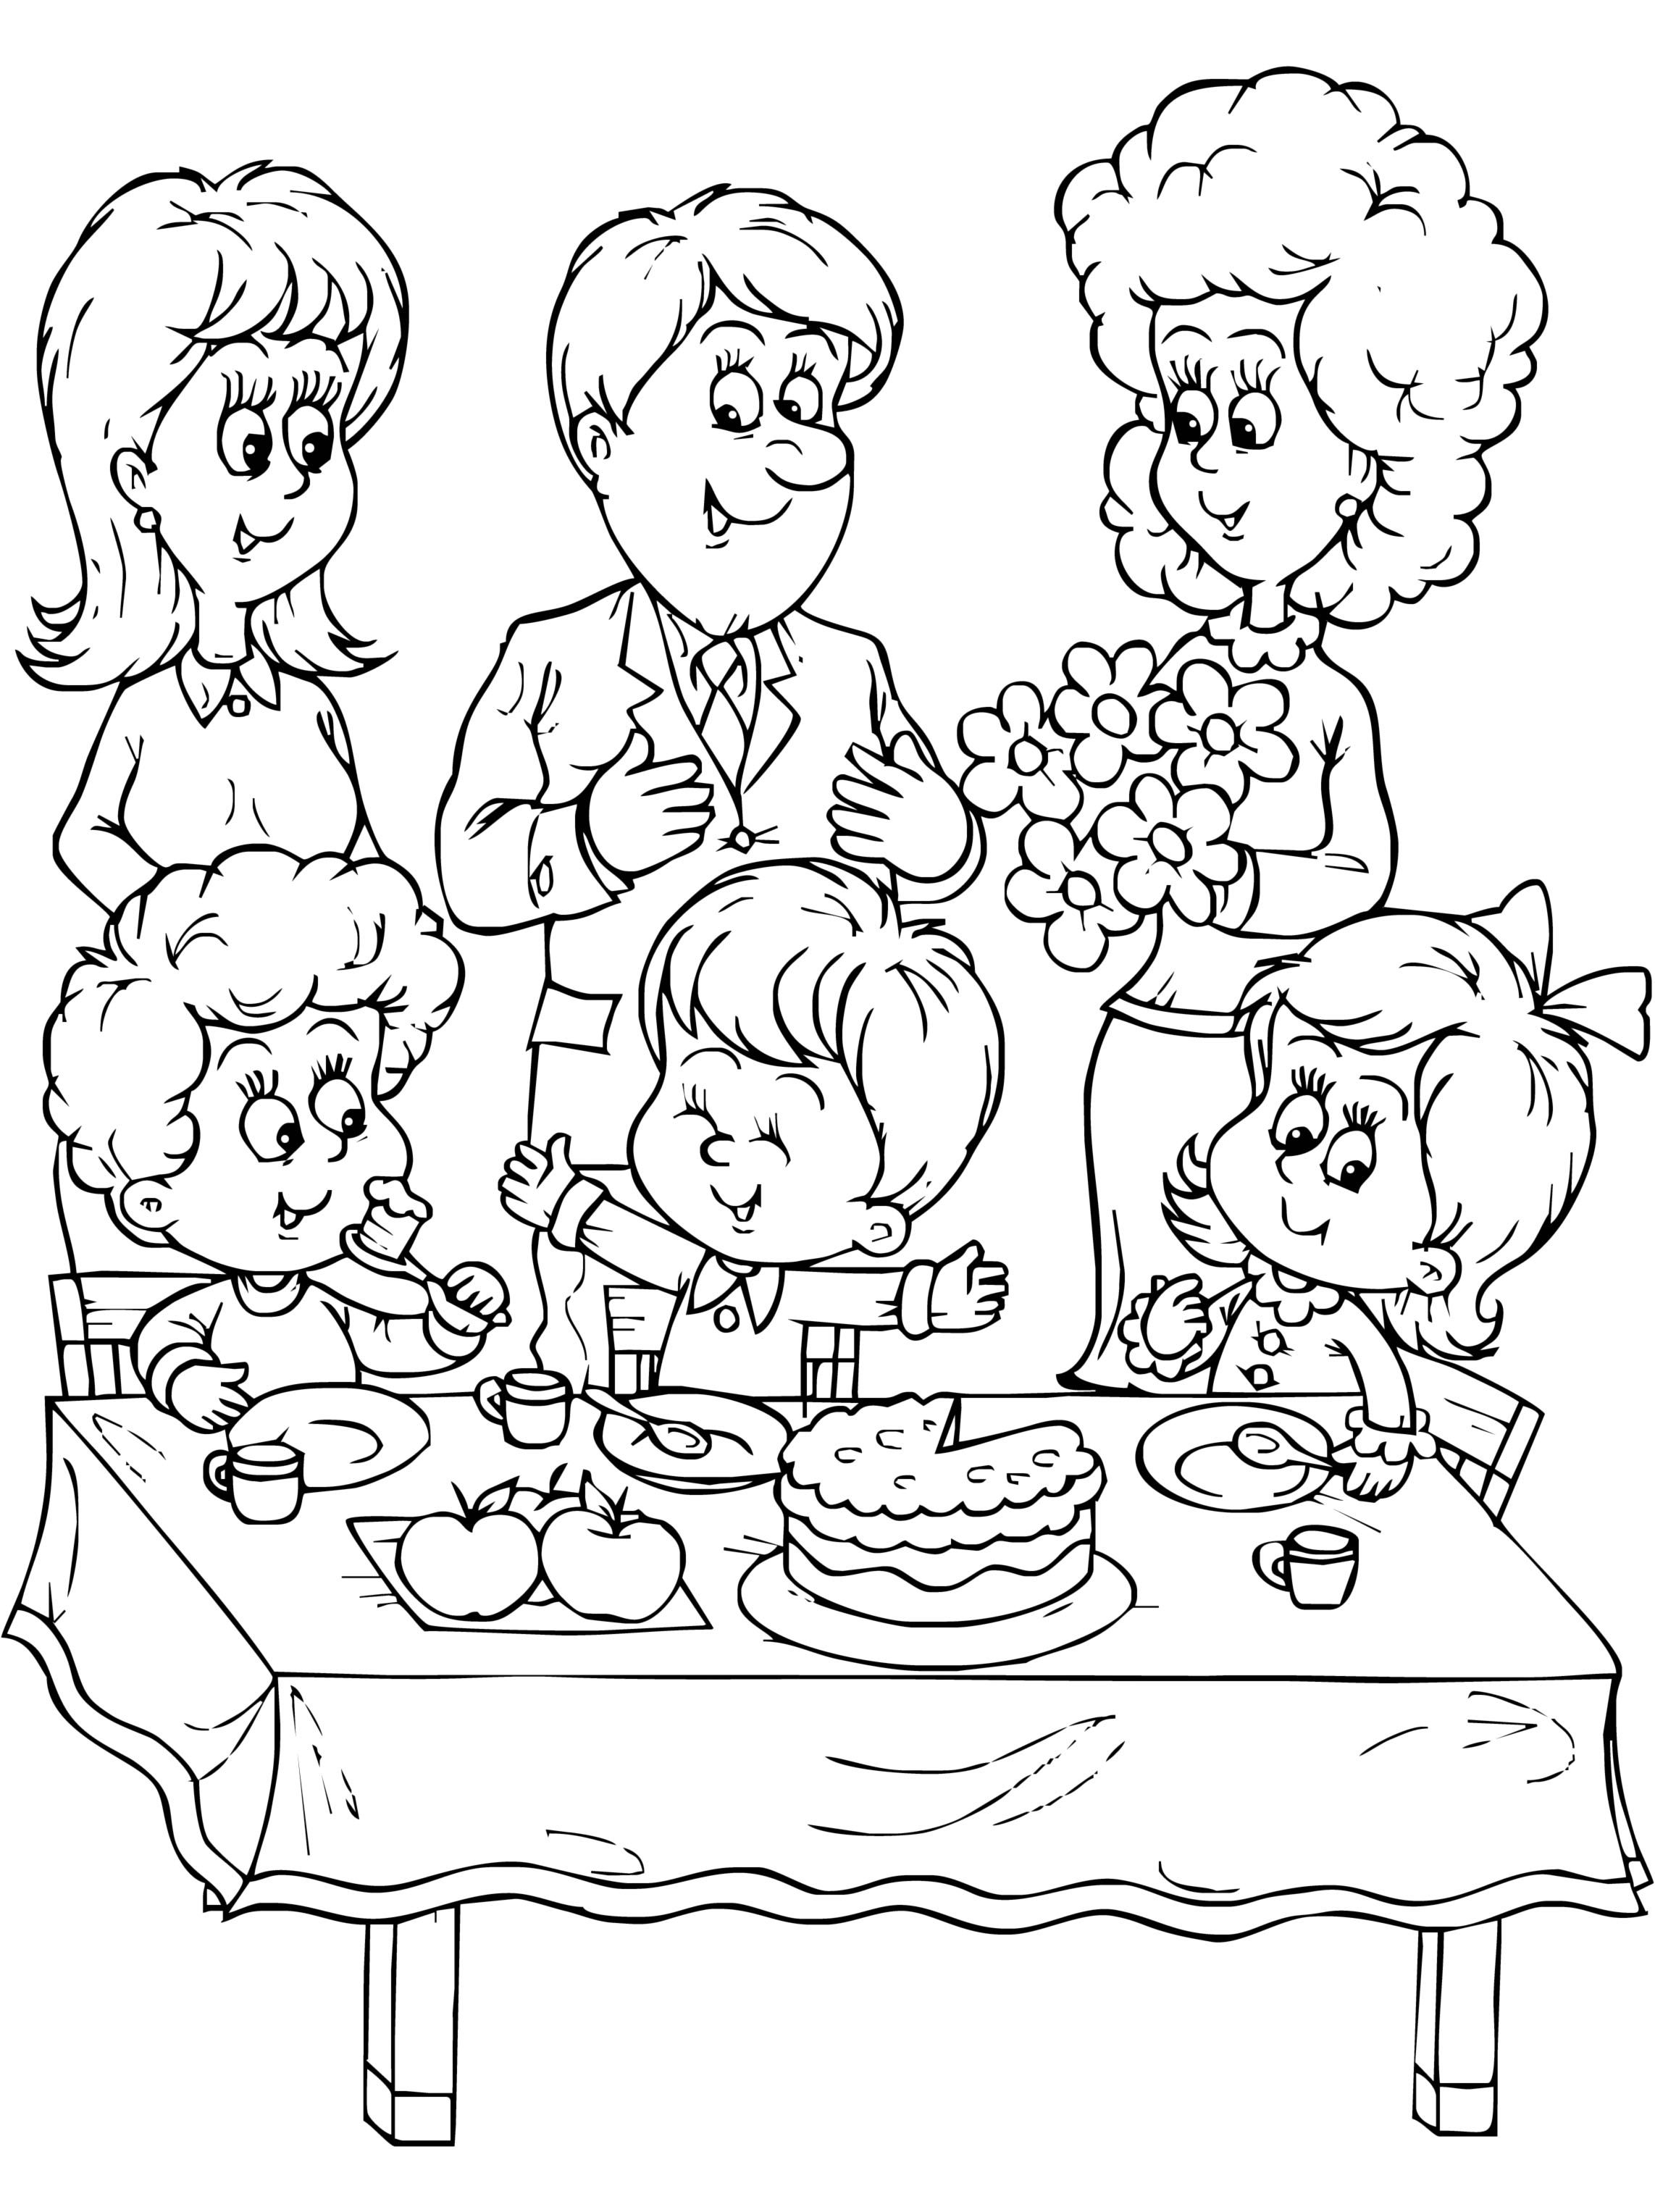 Preschool Coloring Pages Family High Quality Coloring Pages